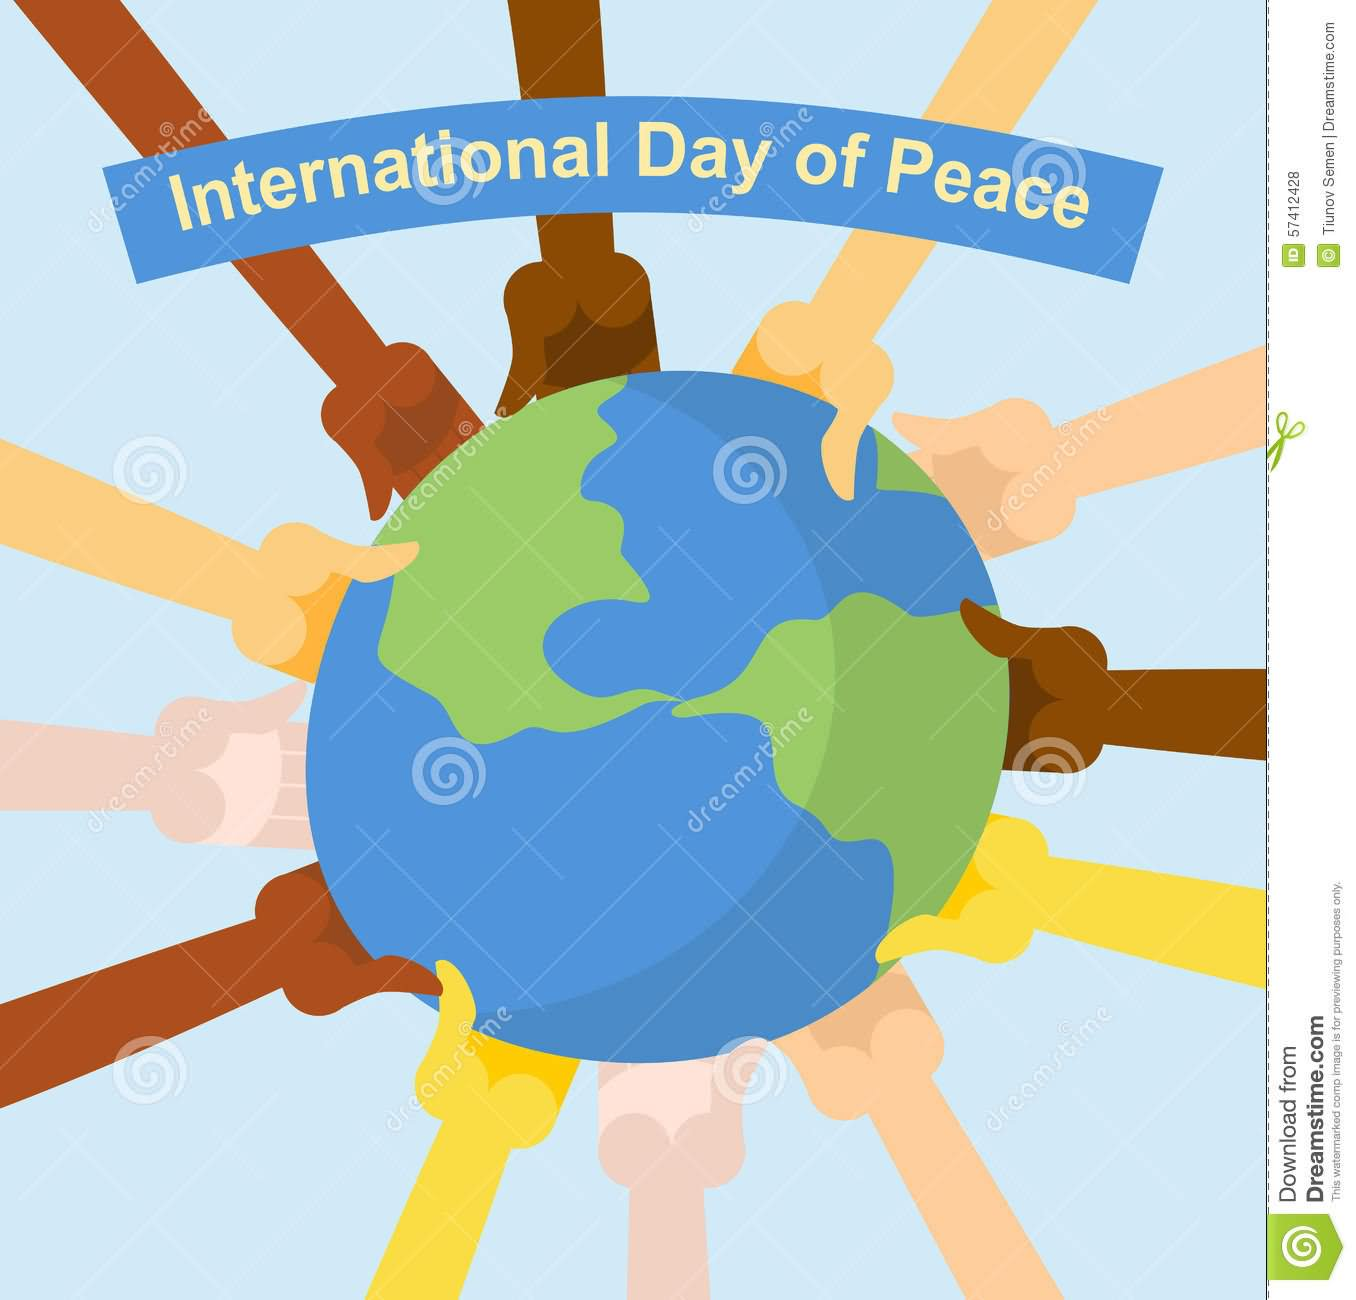 120-International Peace Day Wishes